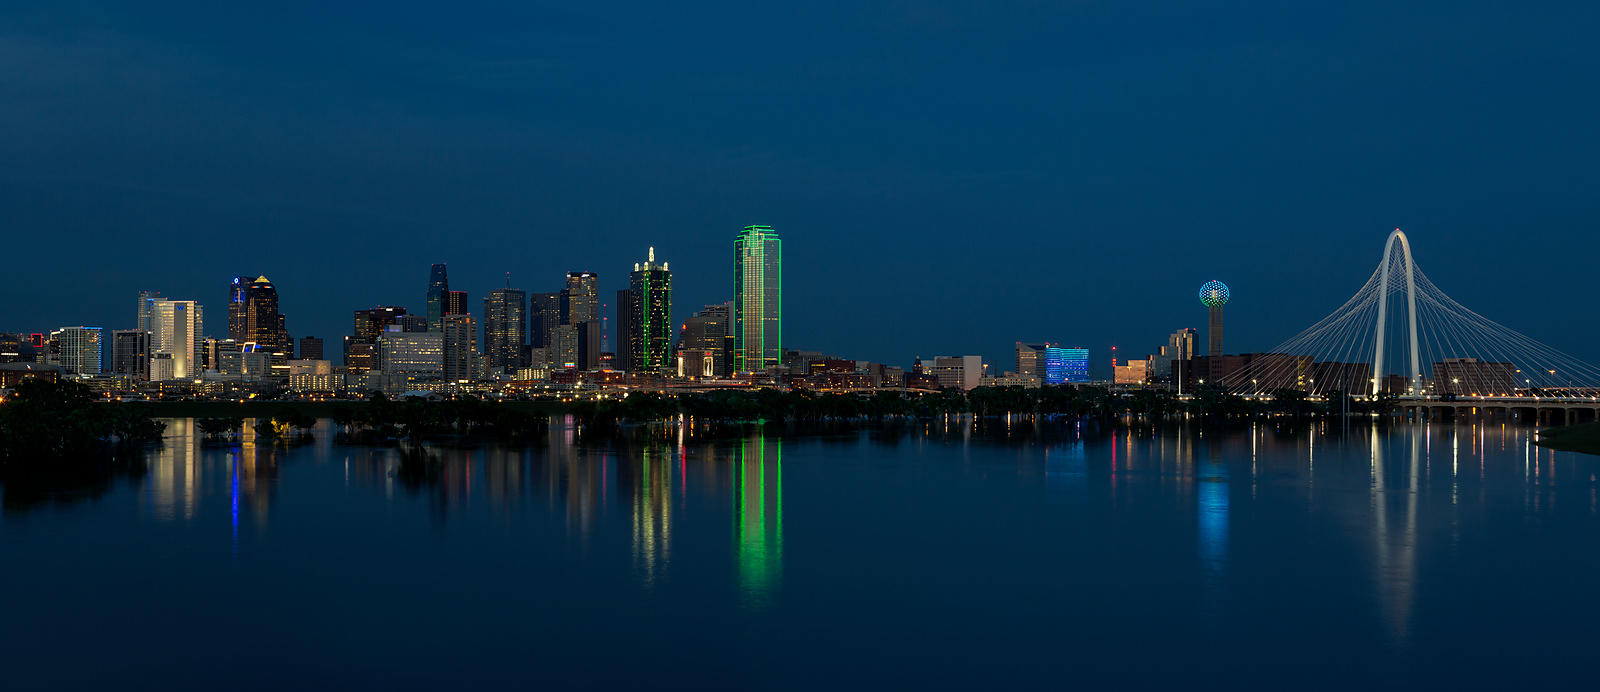 clark crenshaw photography dallas skyline reflections